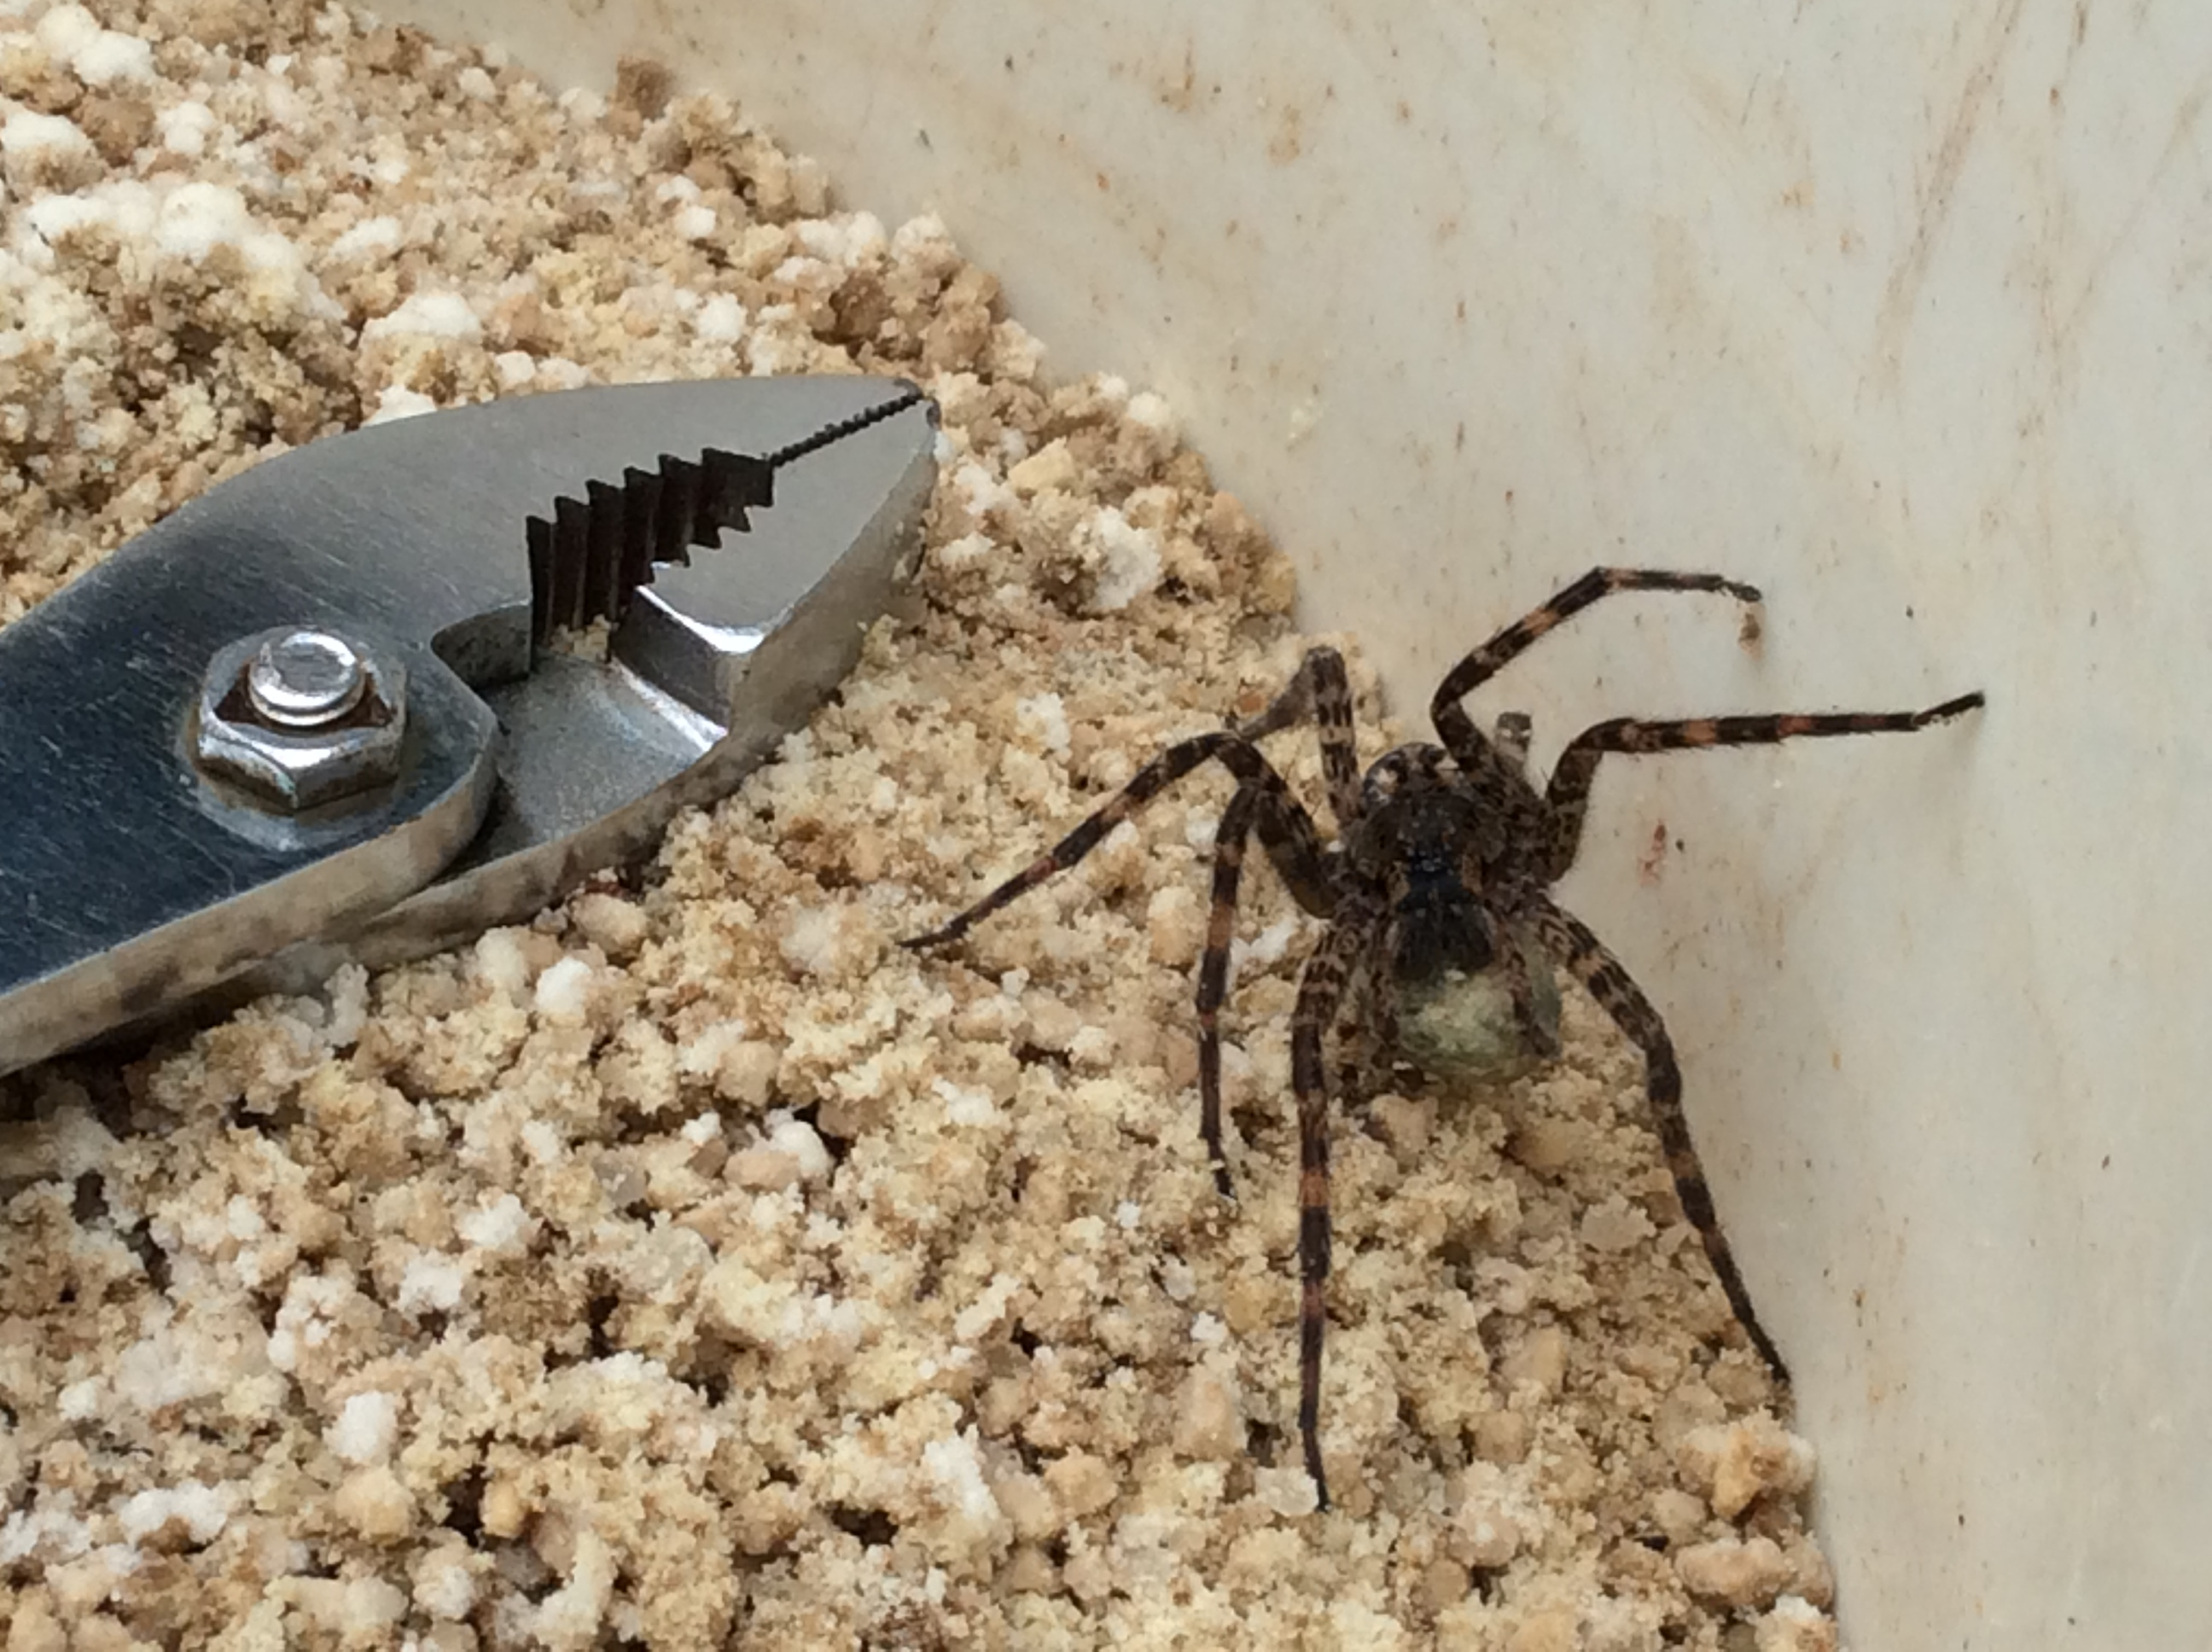 recluse women A brentwood woman is recovering after a brown recluse spider bit her several times.